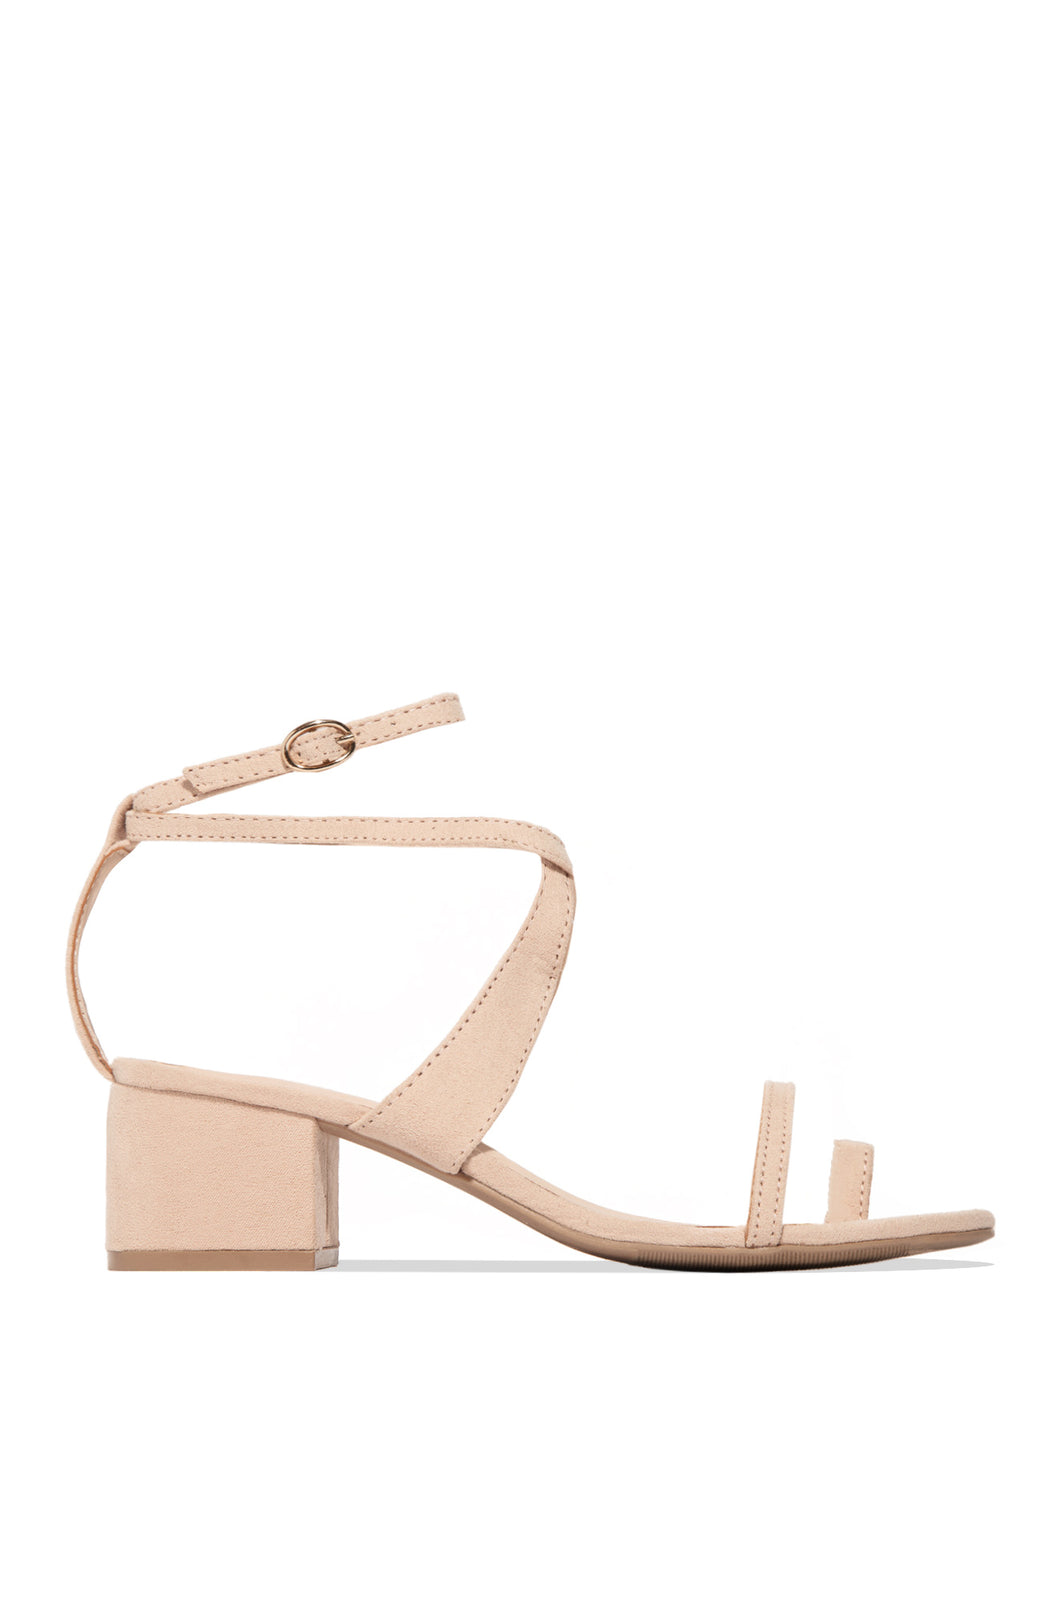 You're The One Mid Heel - Nude